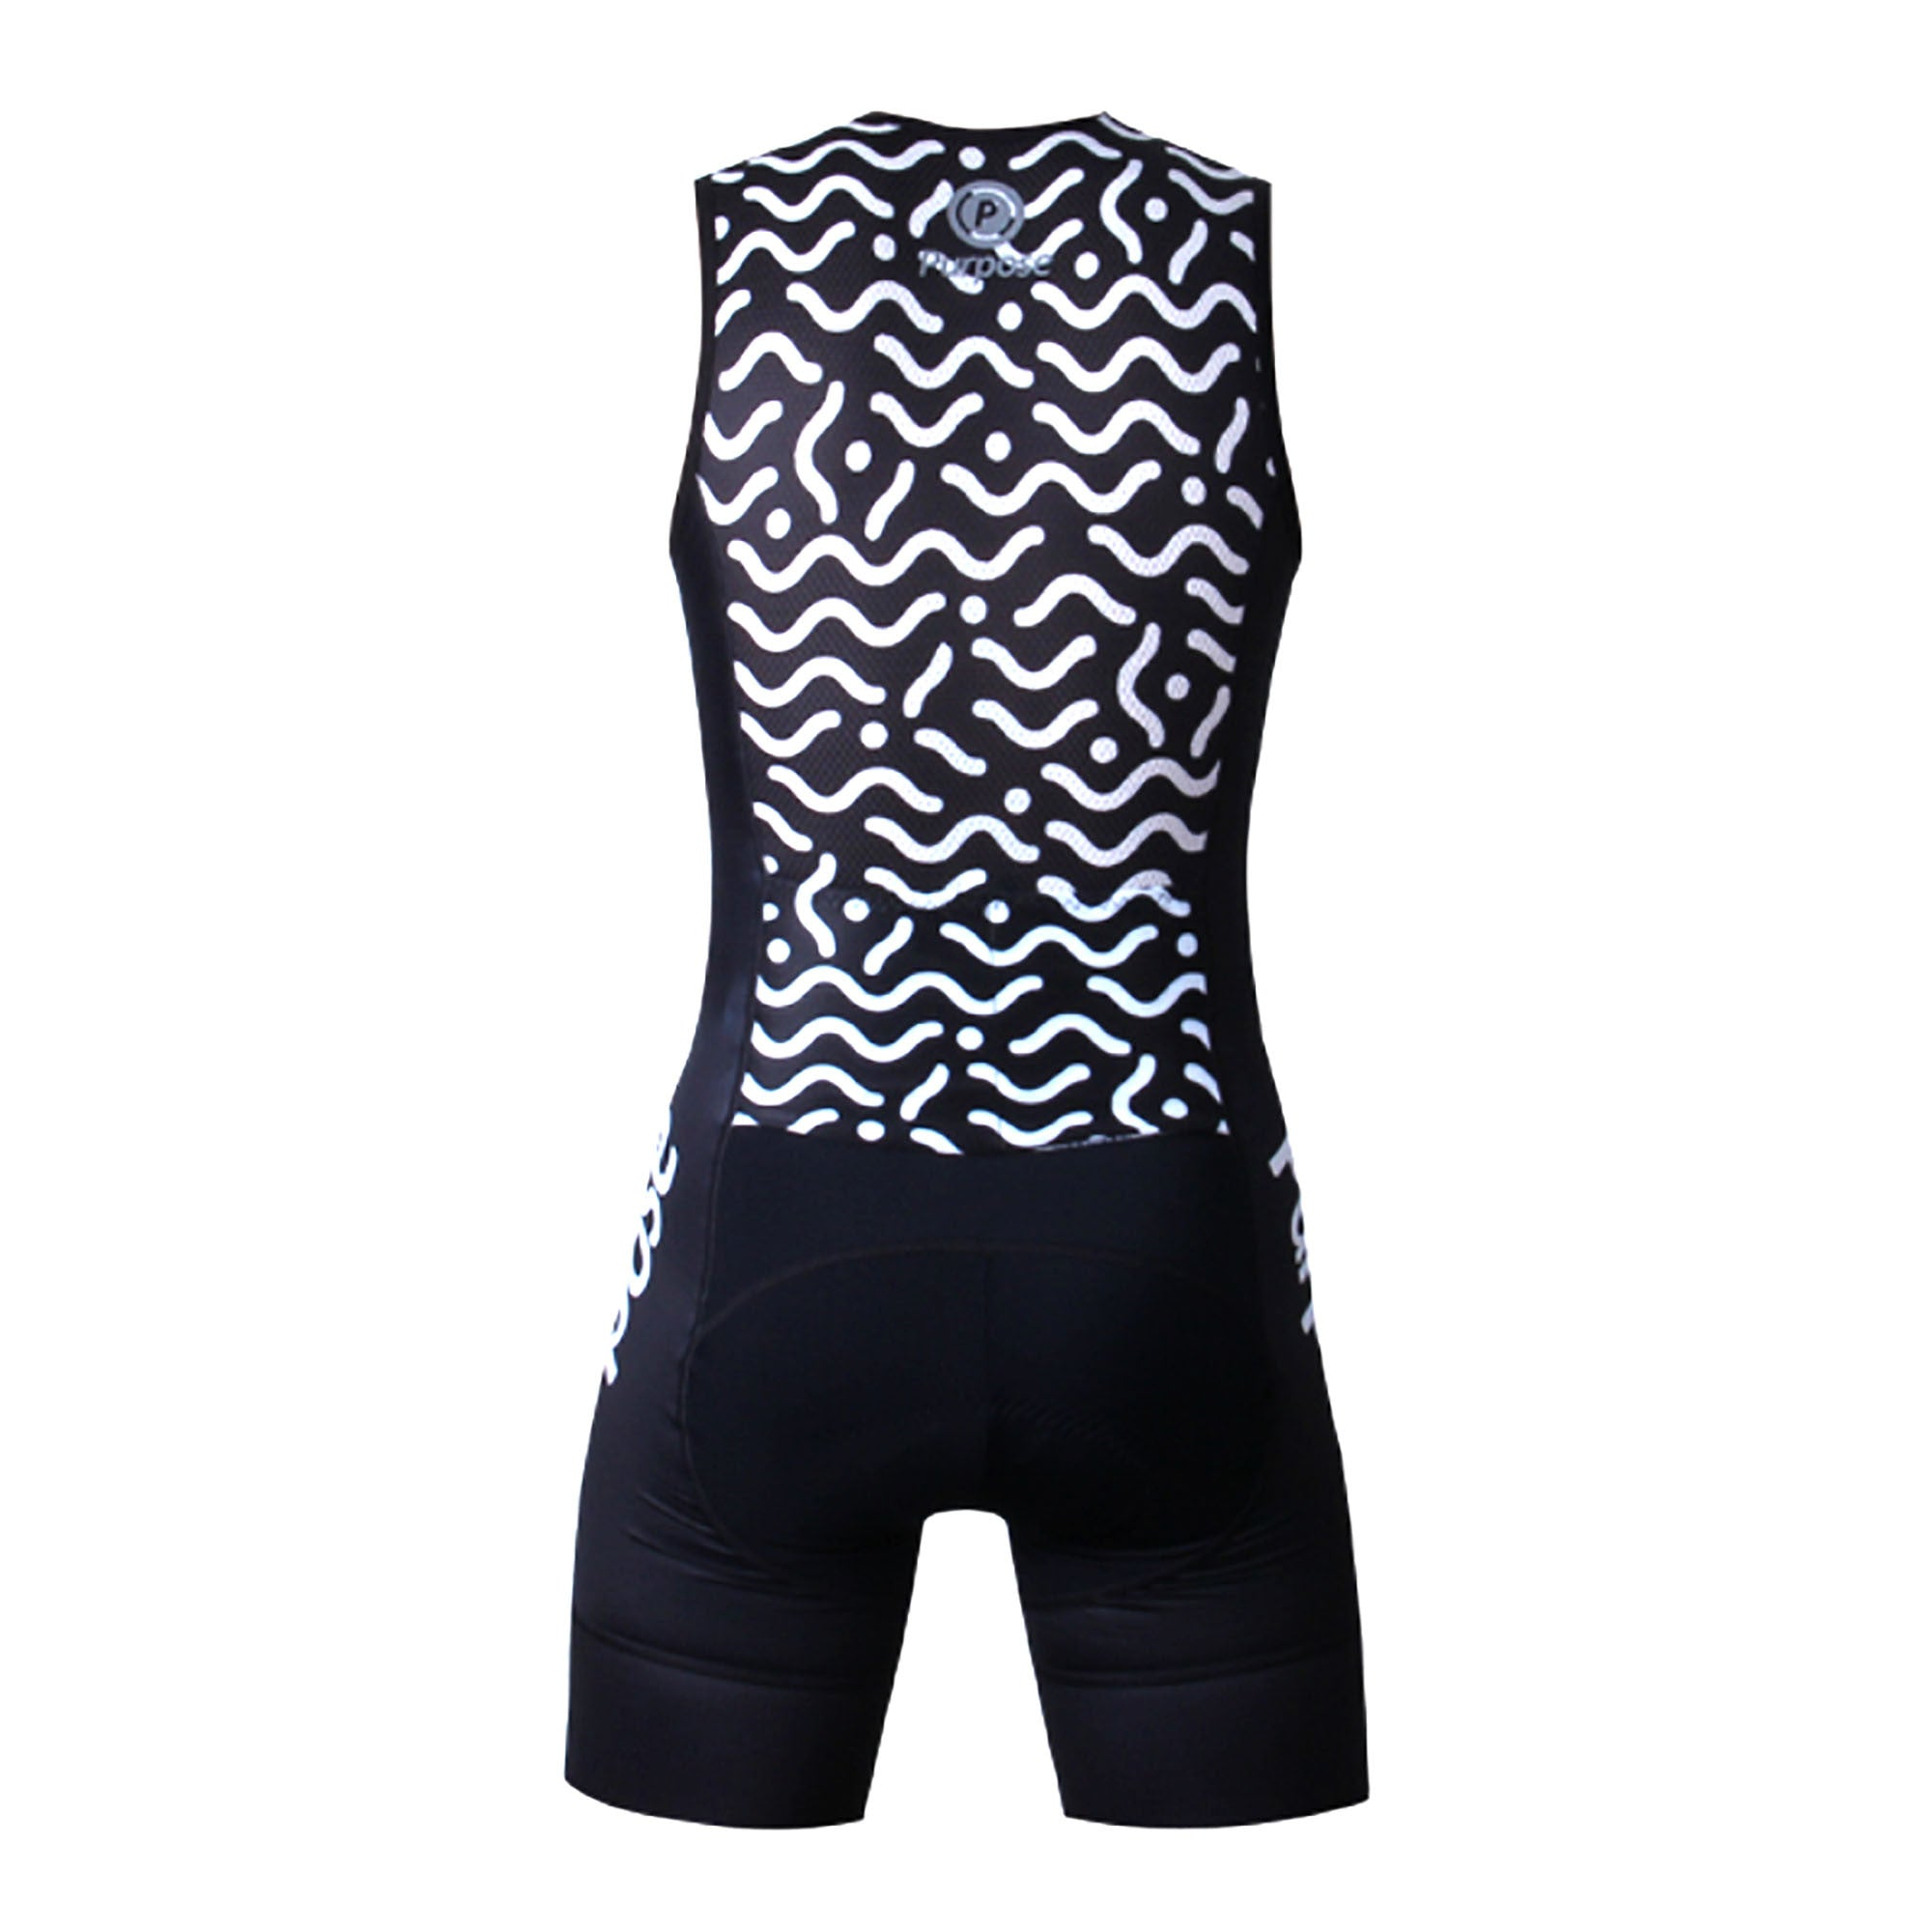 Purpose Flow Pro Performance Mesh Tri Suit (Waves Black and White ... 2725de829